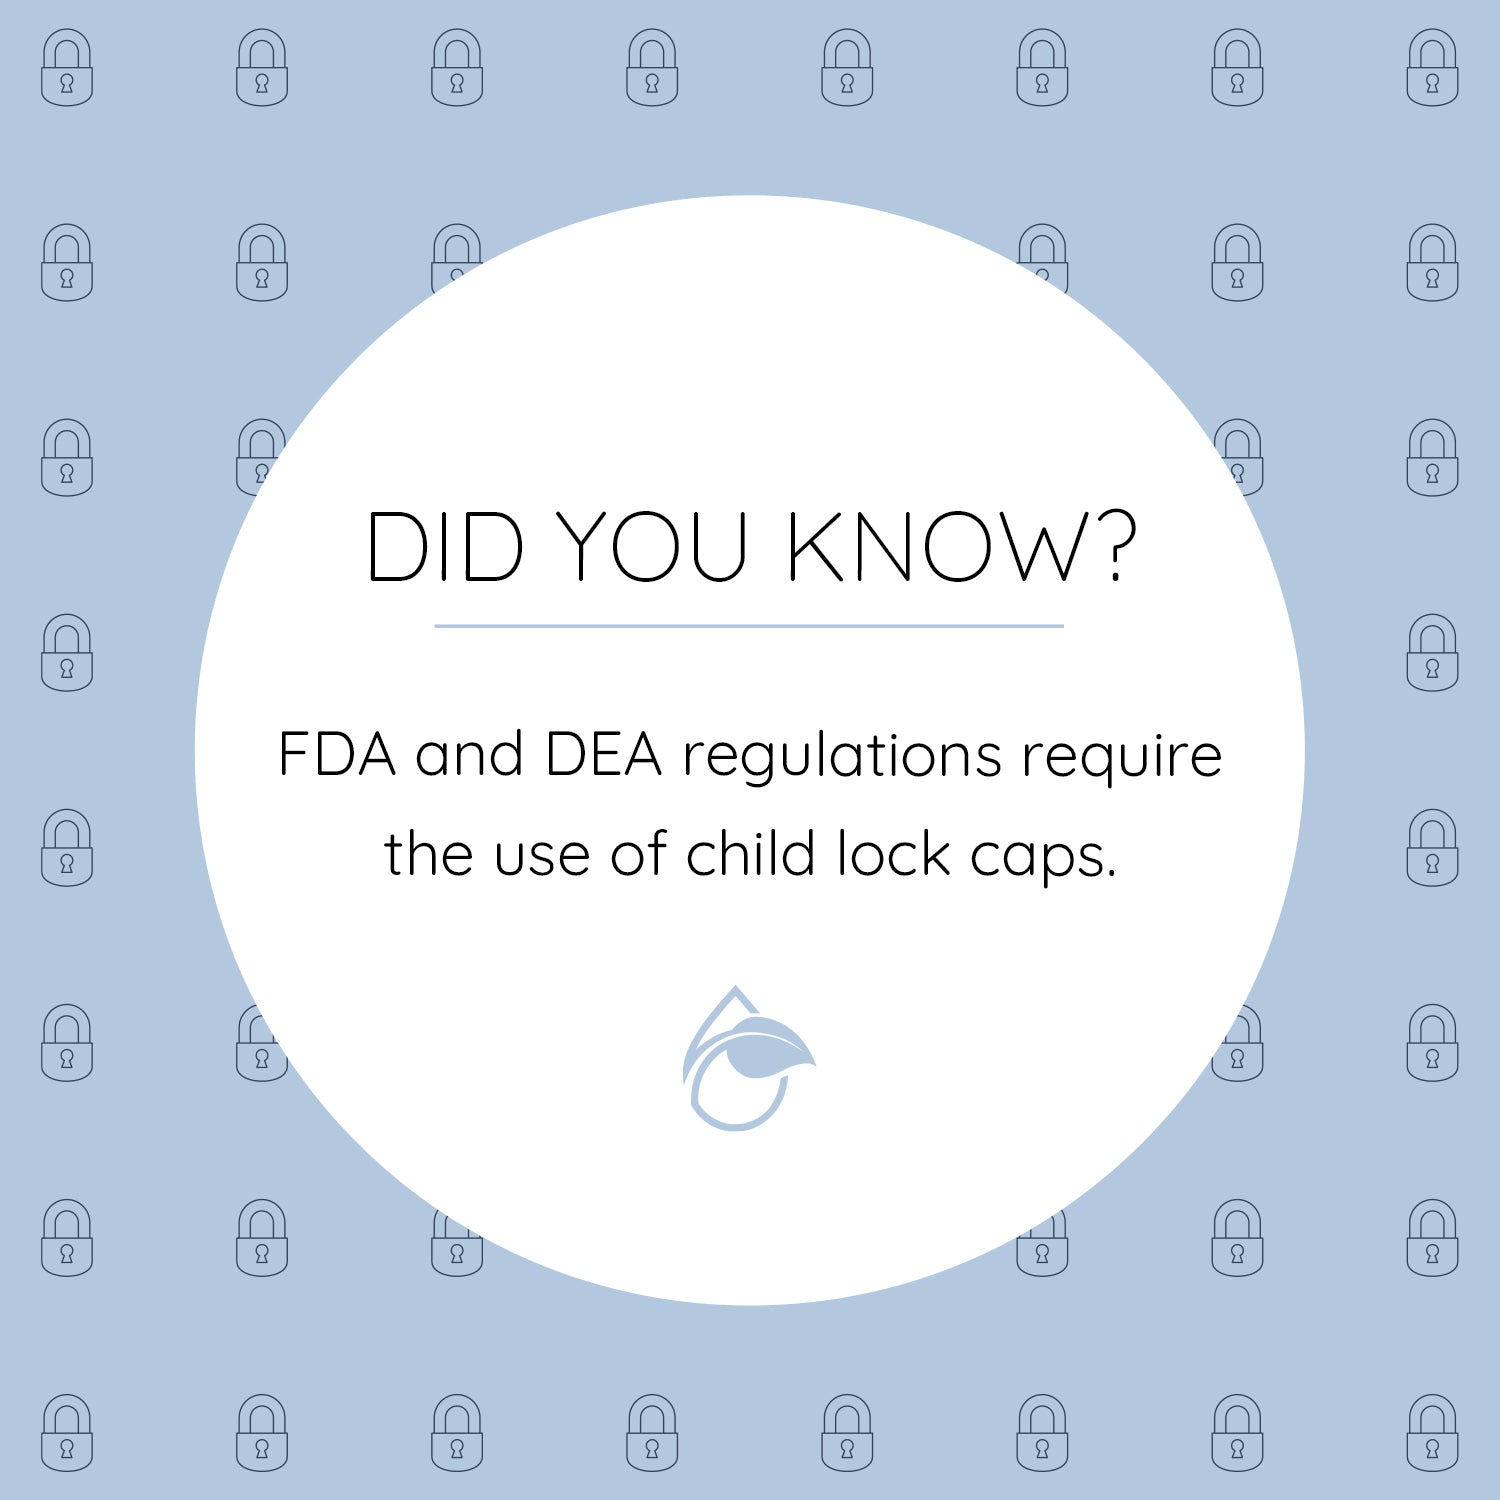 DYK - Child Lock Caps